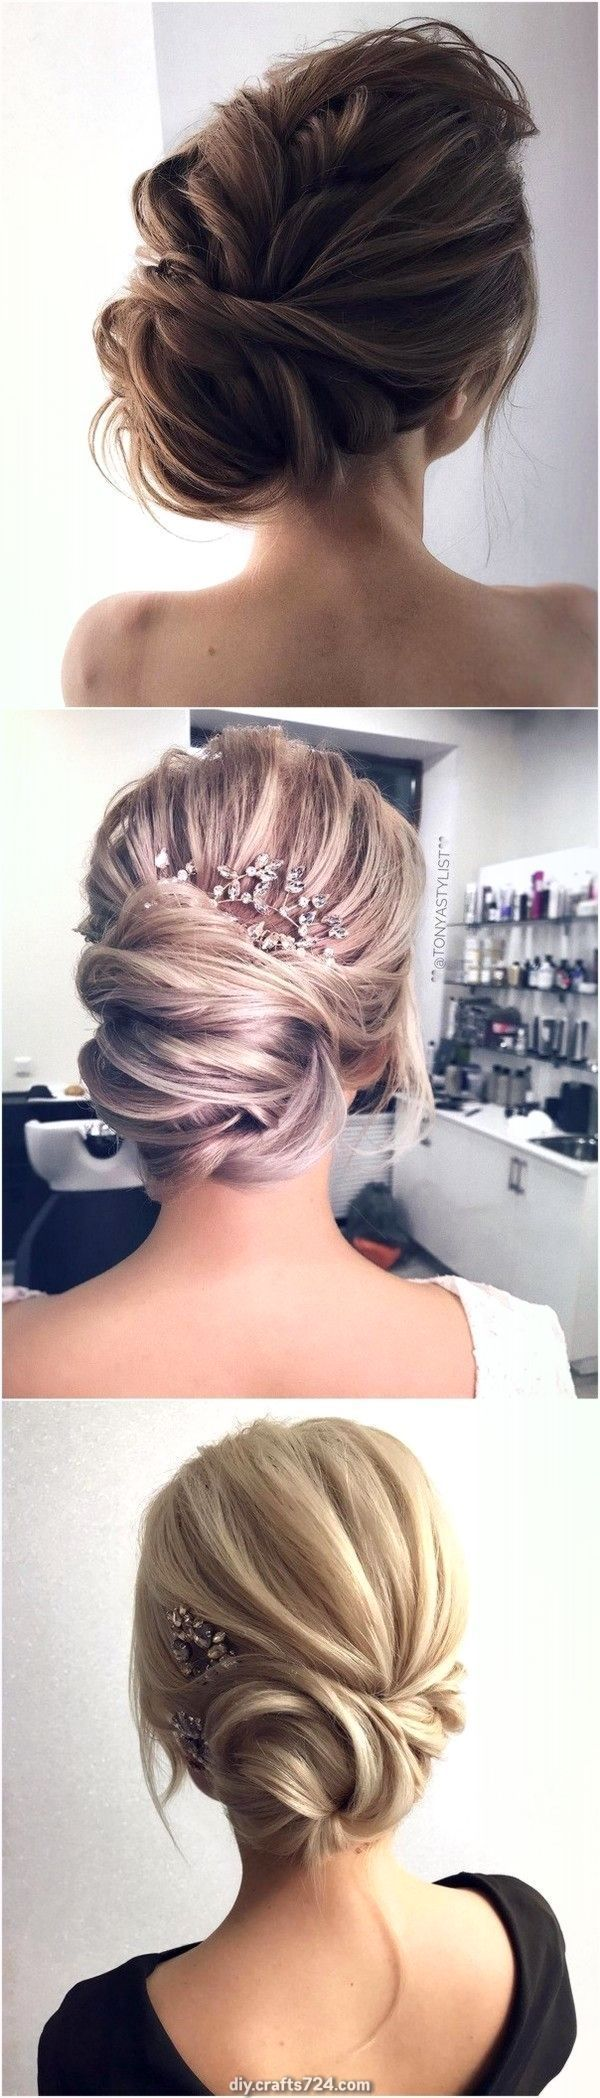 Incredible elegant updo marriage ceremony hairstyles